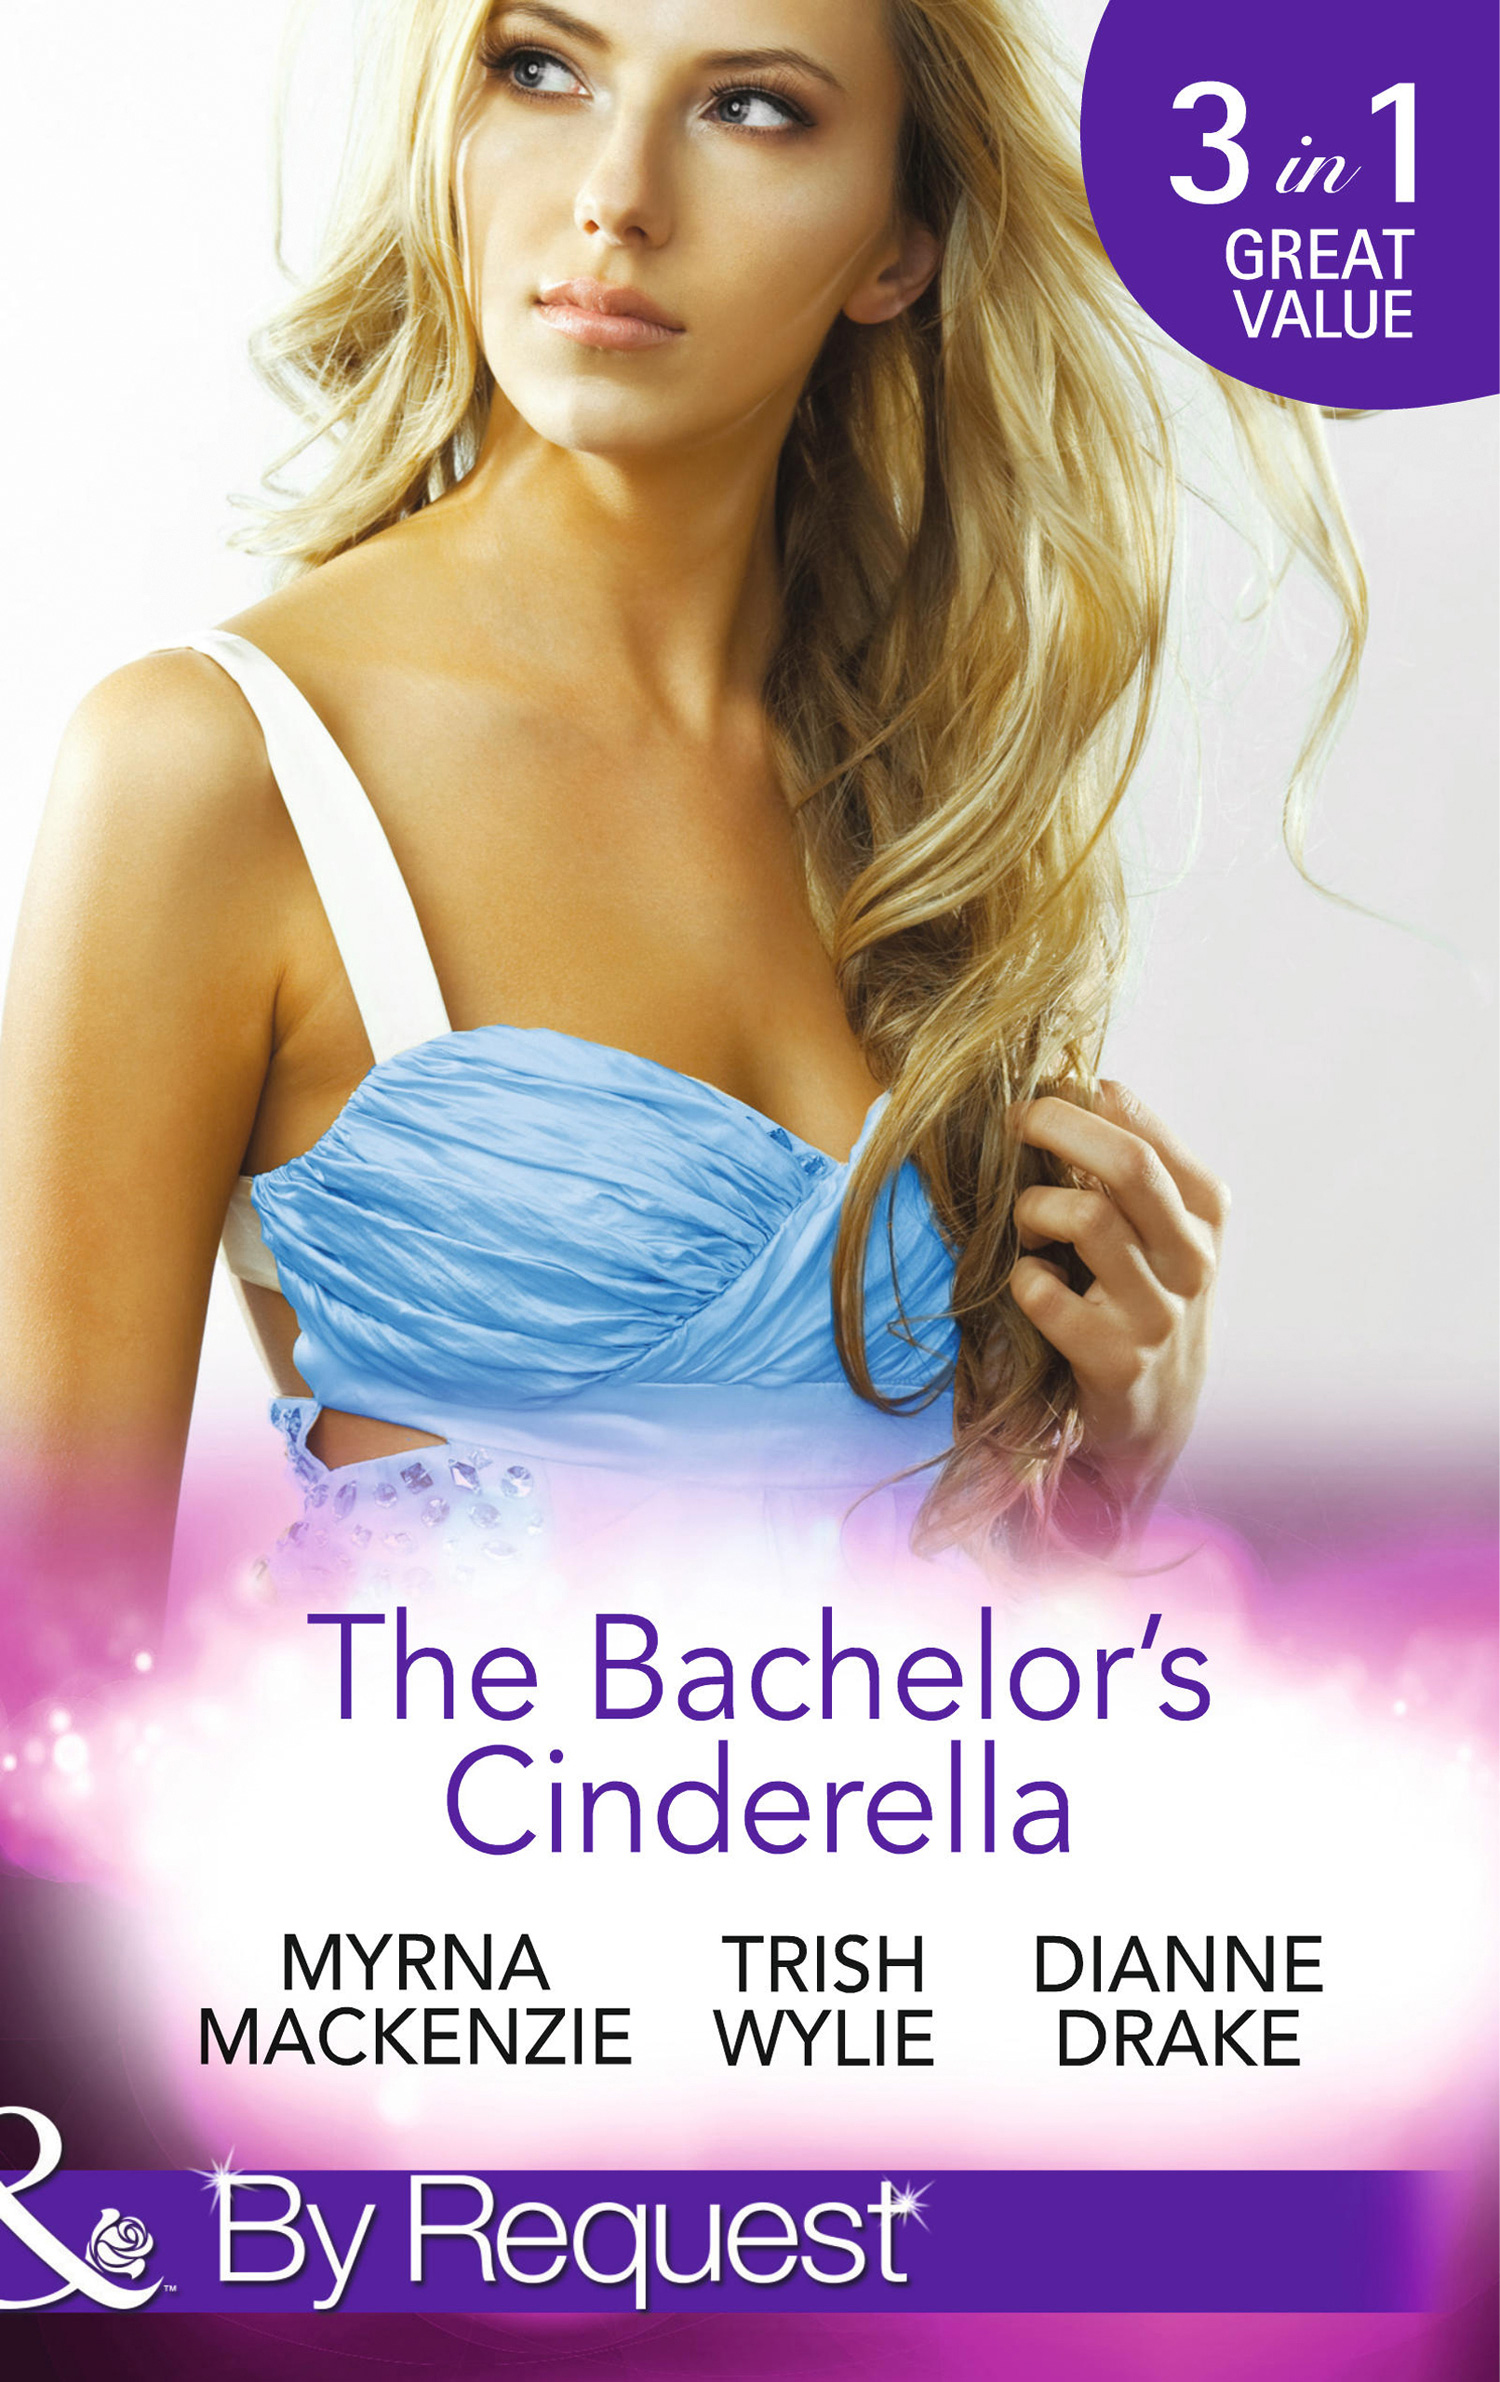 The Bachelor's Cinderella